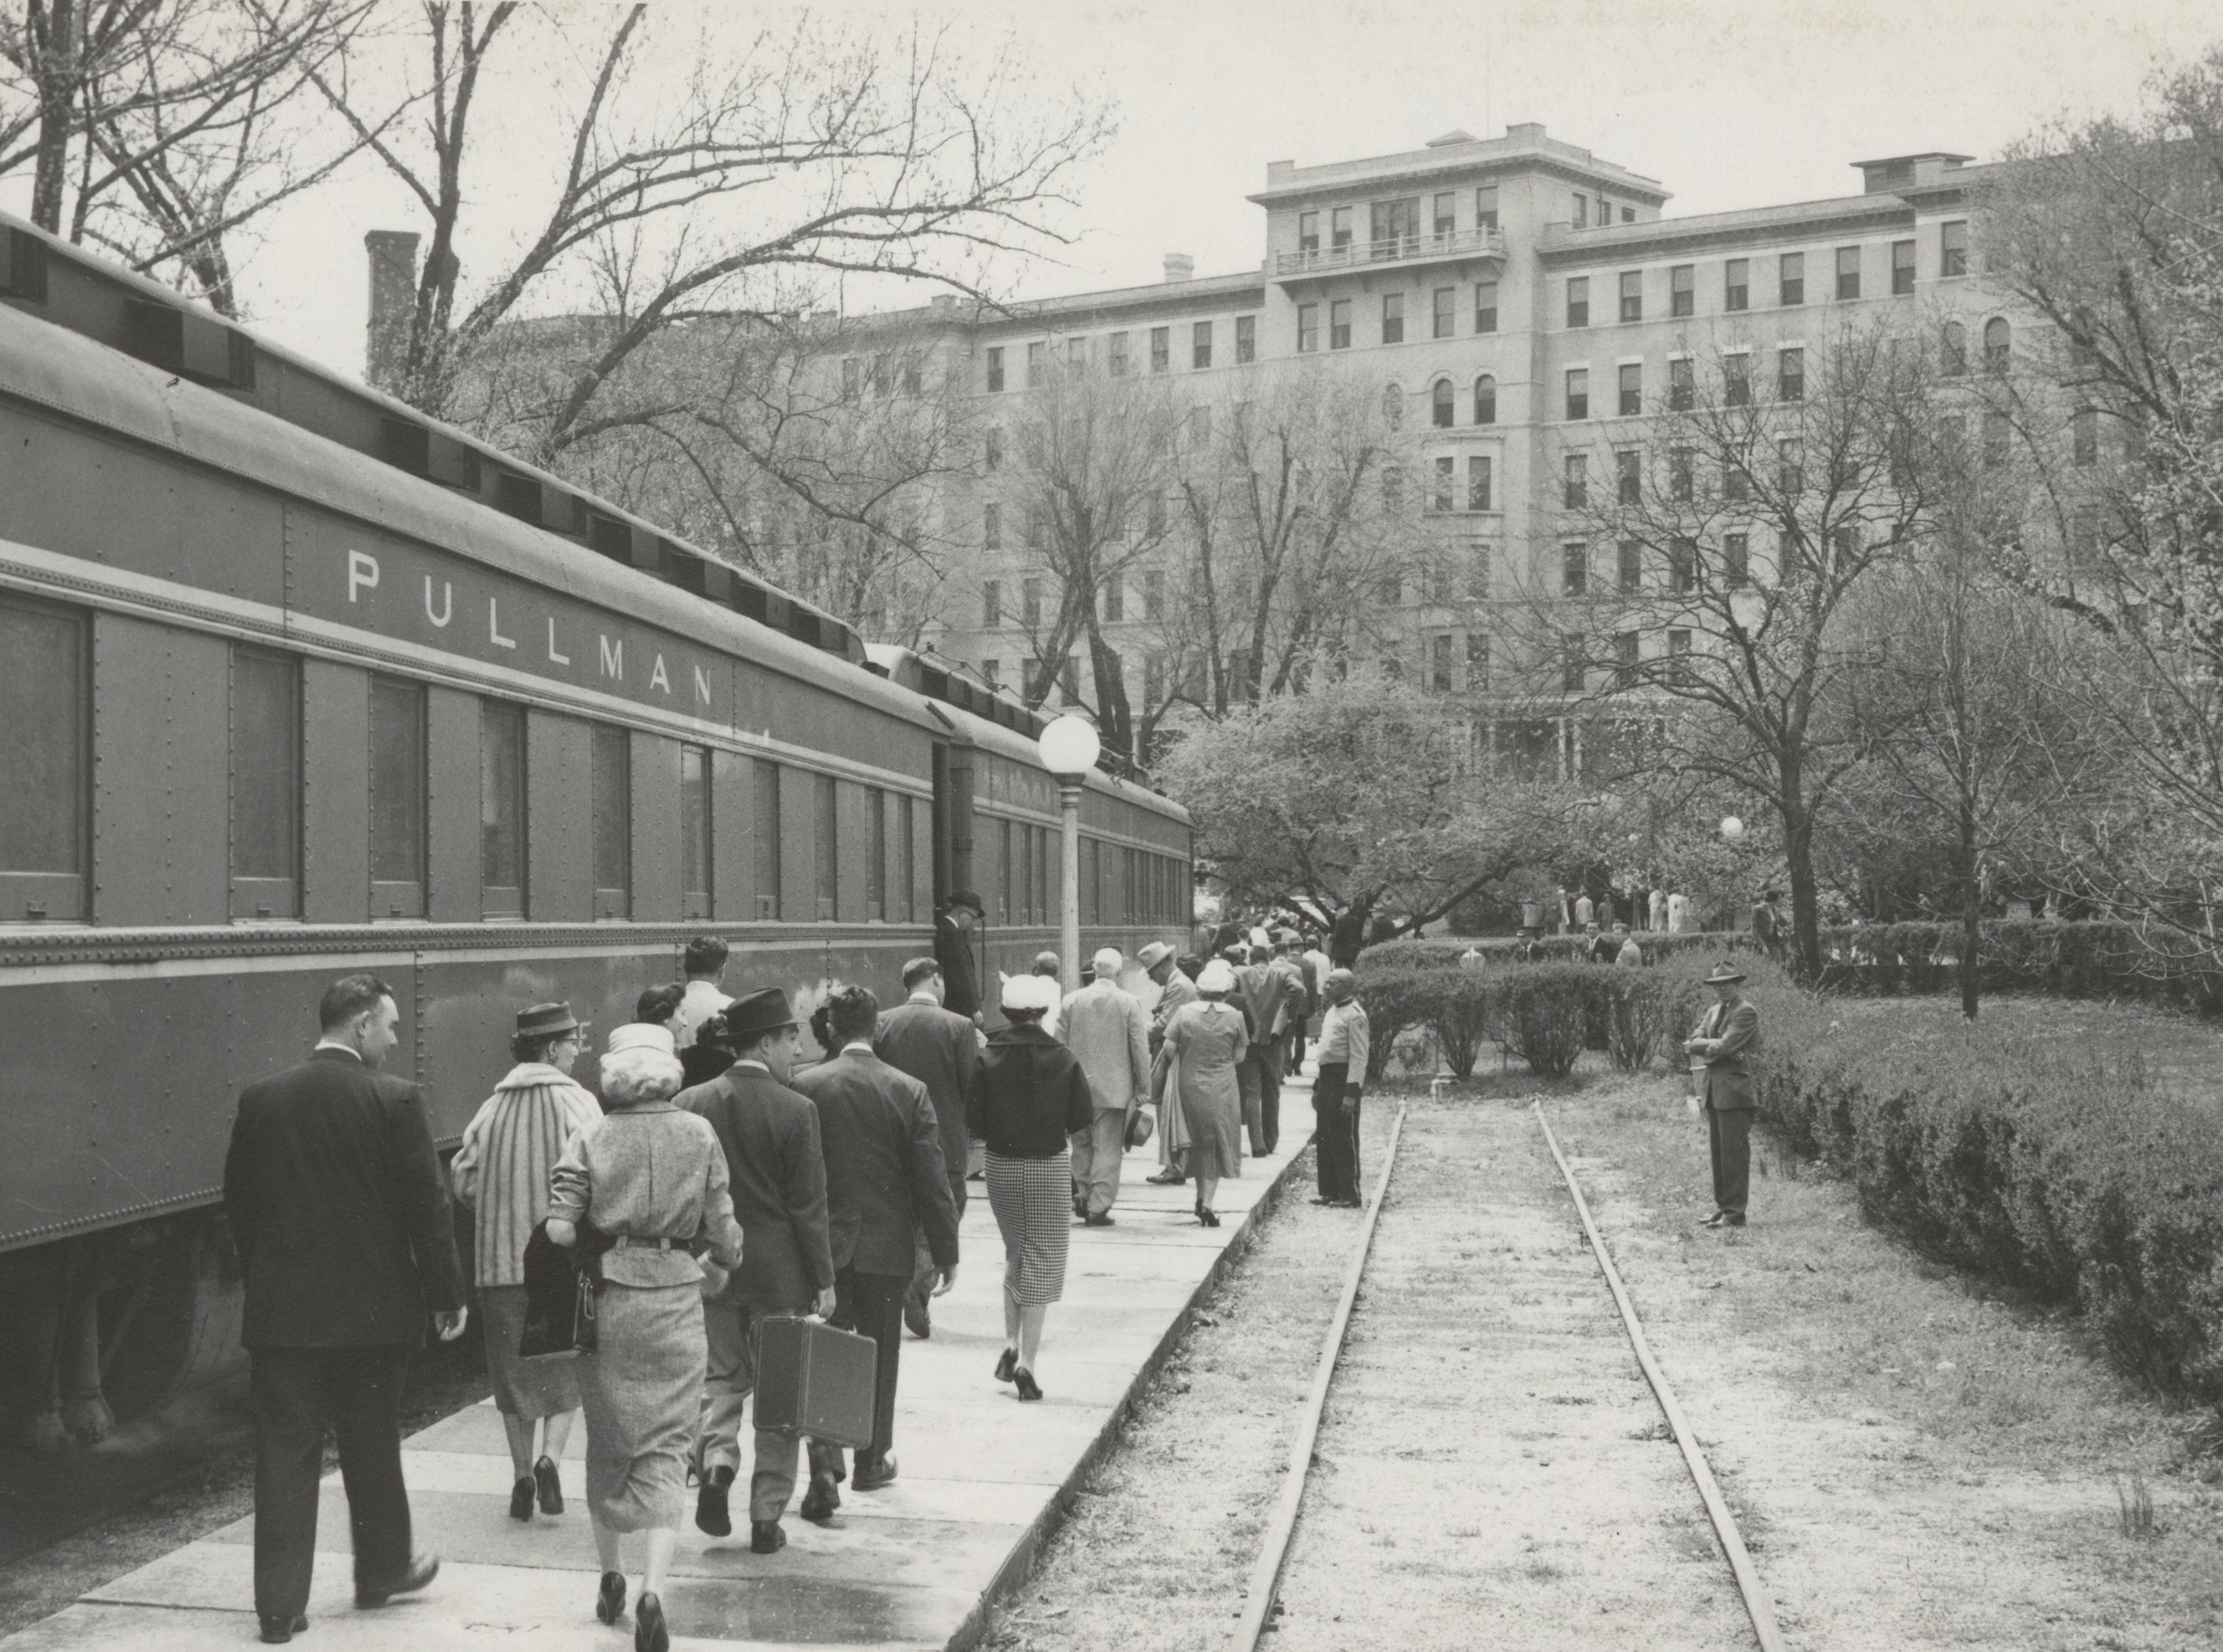 Pullman cars pull up to the French Lick Spring Hotel offloading guests to the hotel in the 1950s.